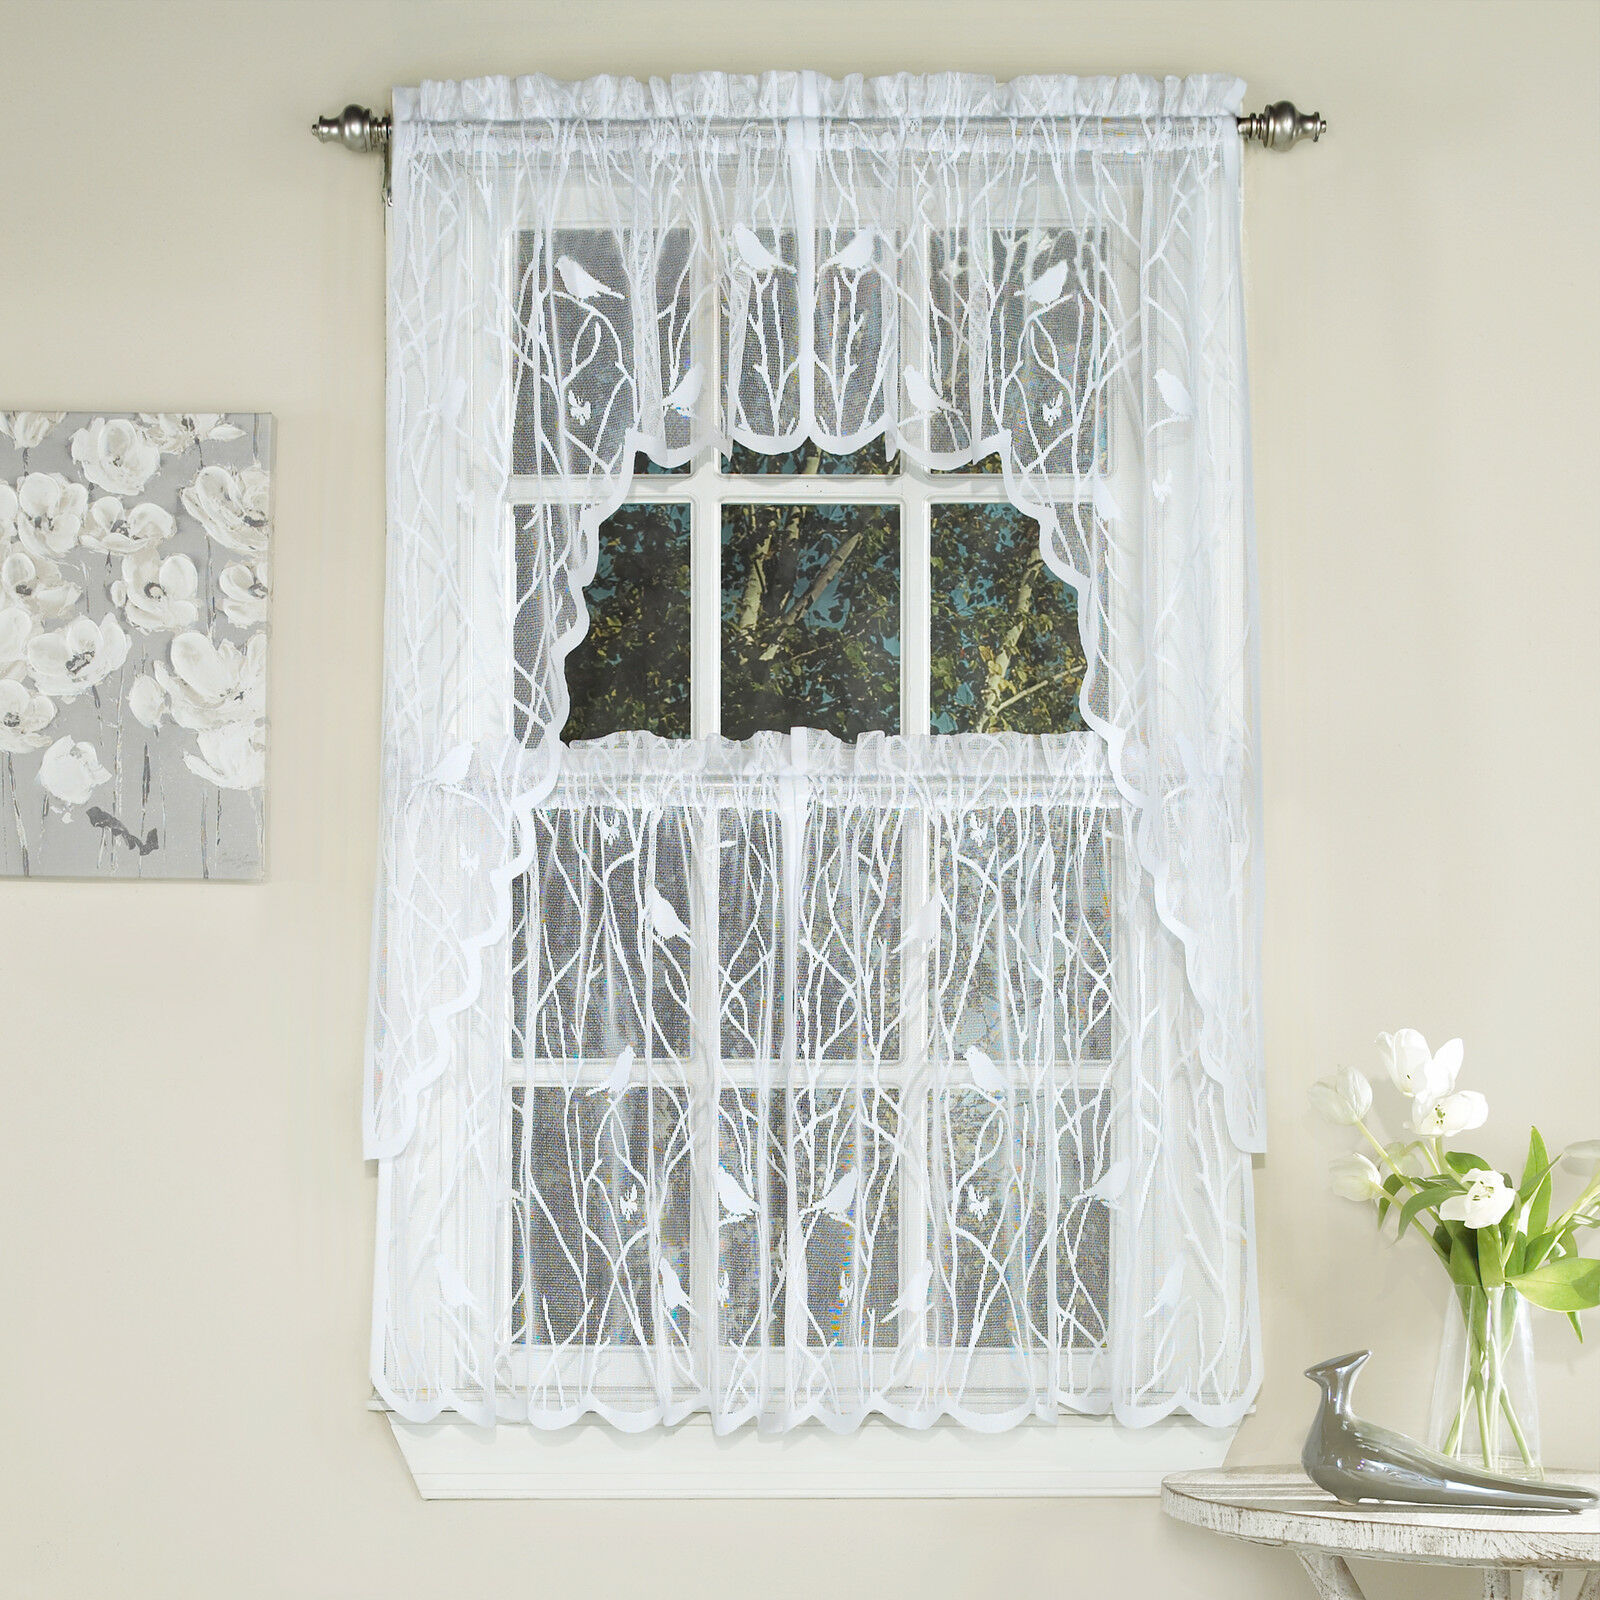 Primary image for Knit Lace Bird Motif Kitchen Window Curtain Tiers, Swags or Valance White